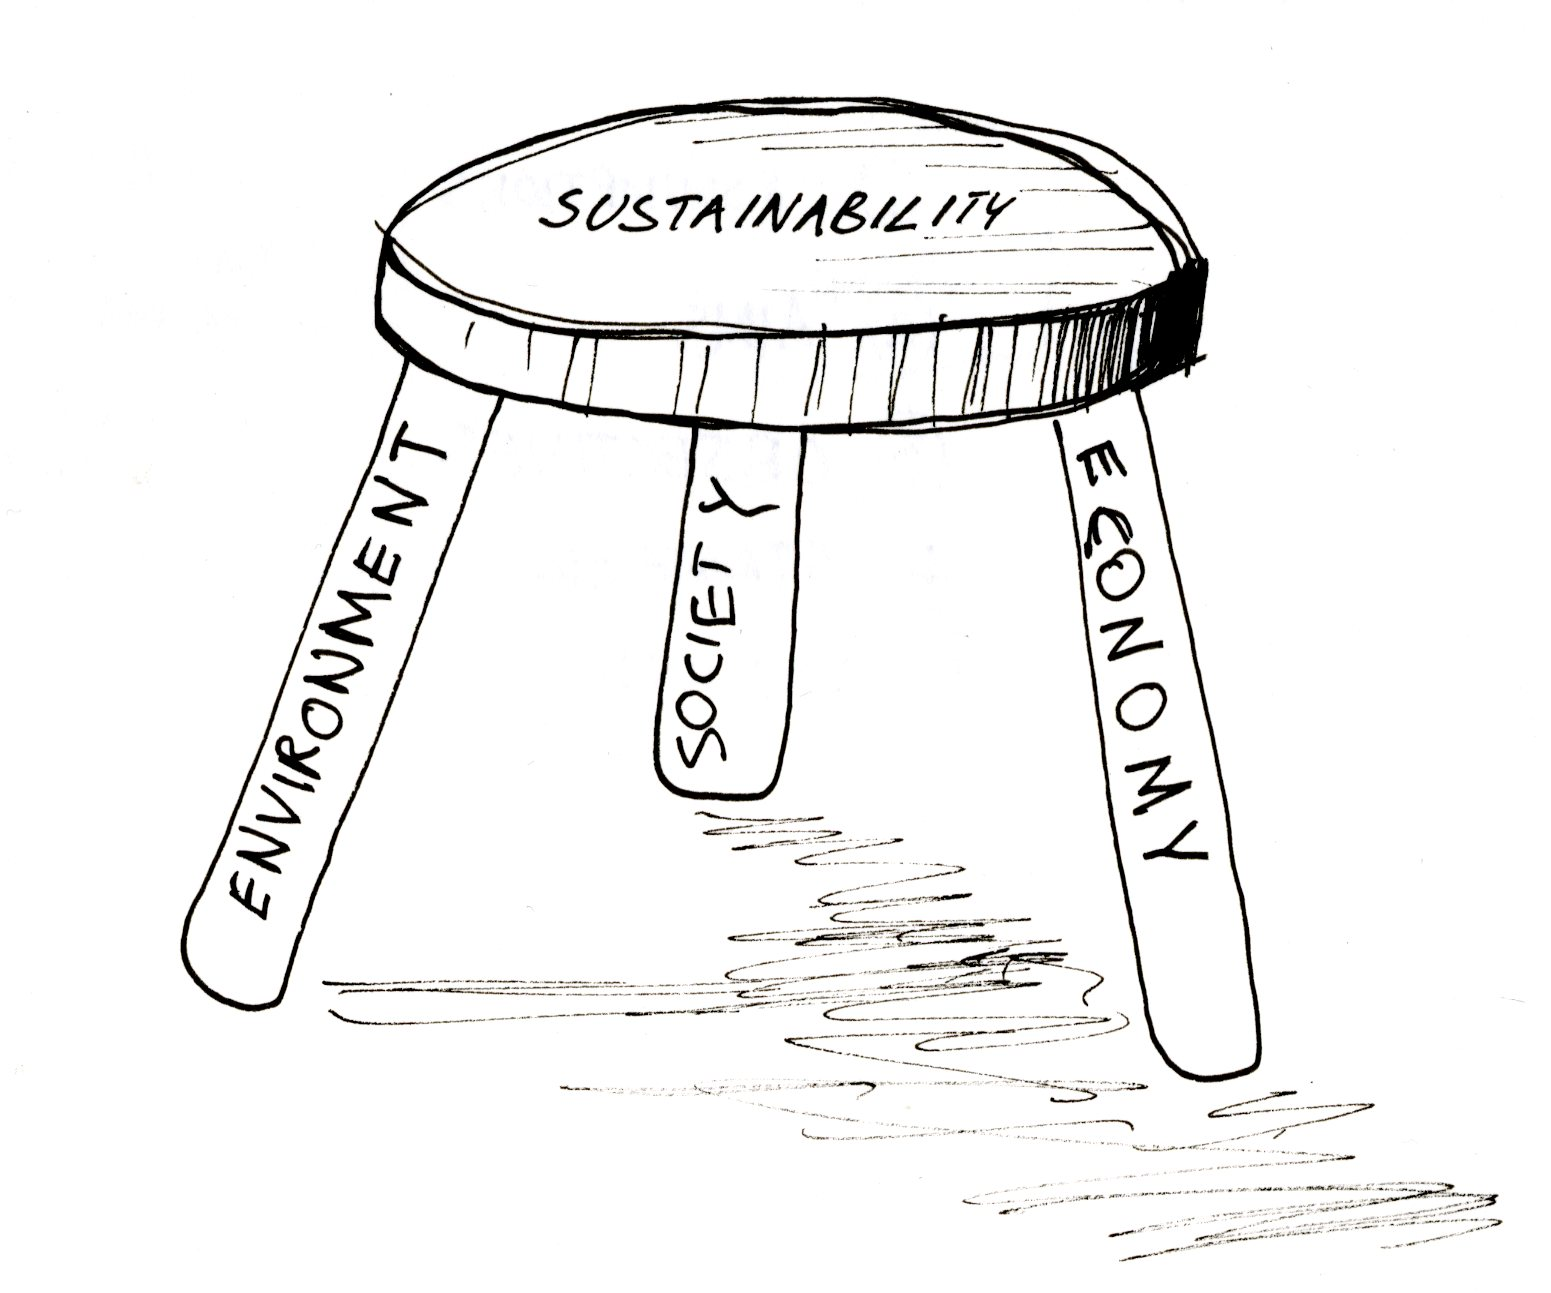 1551x1293 Psychocartography Sustainable Stool